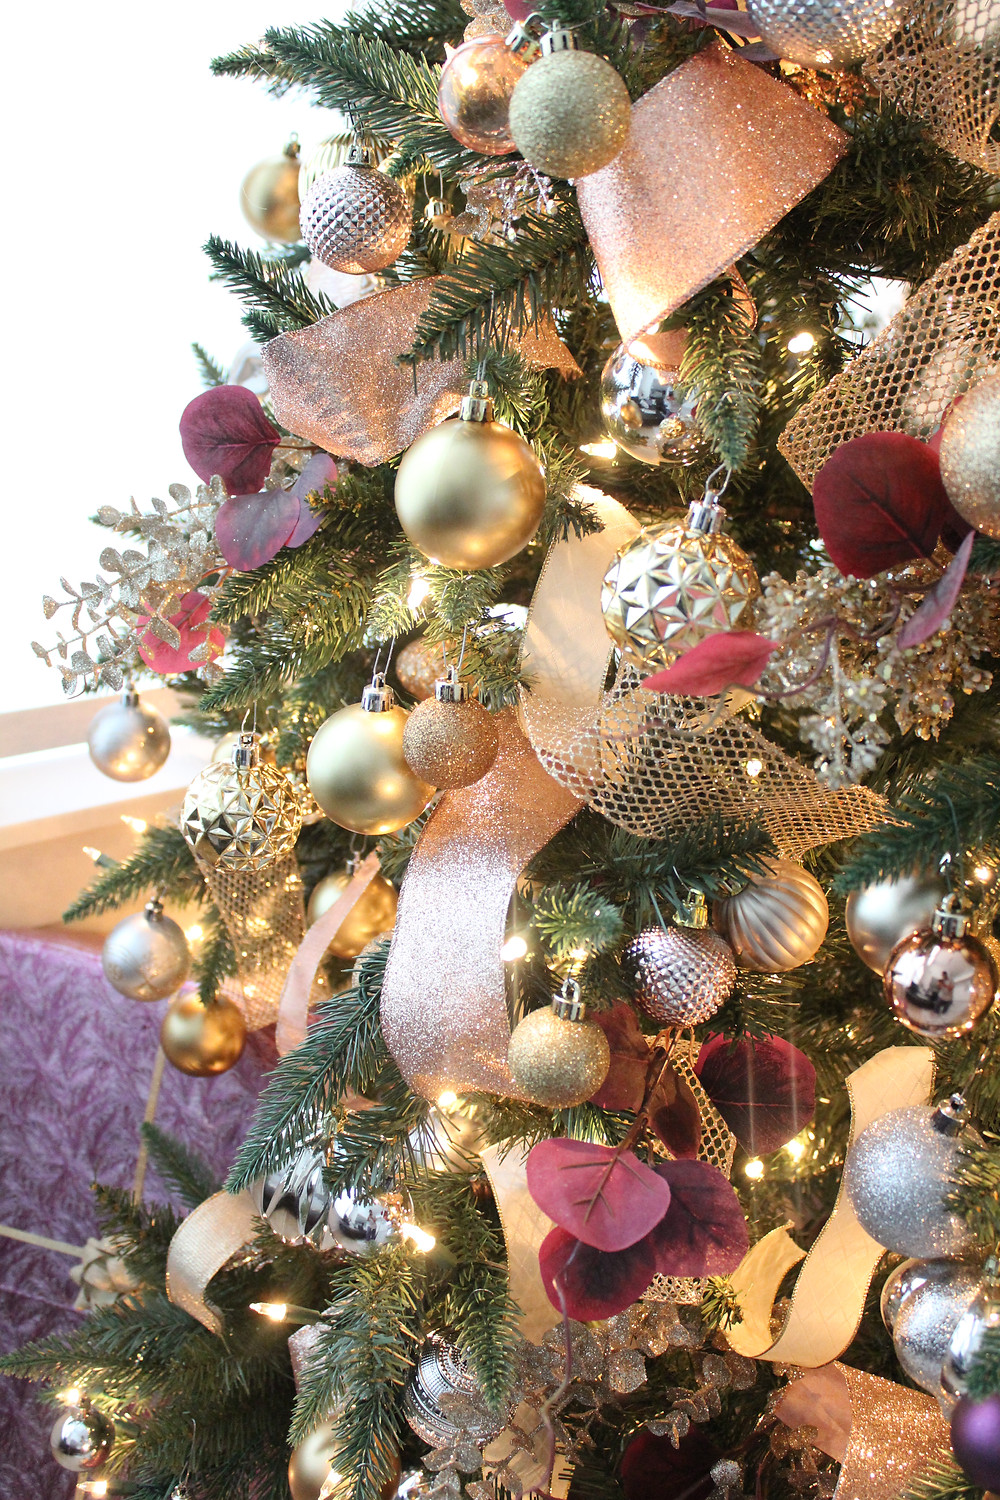 8 Christmas Color Schemes That Are Sure To Bedazzle! #christmasdecor #christmastree #deckthehalls